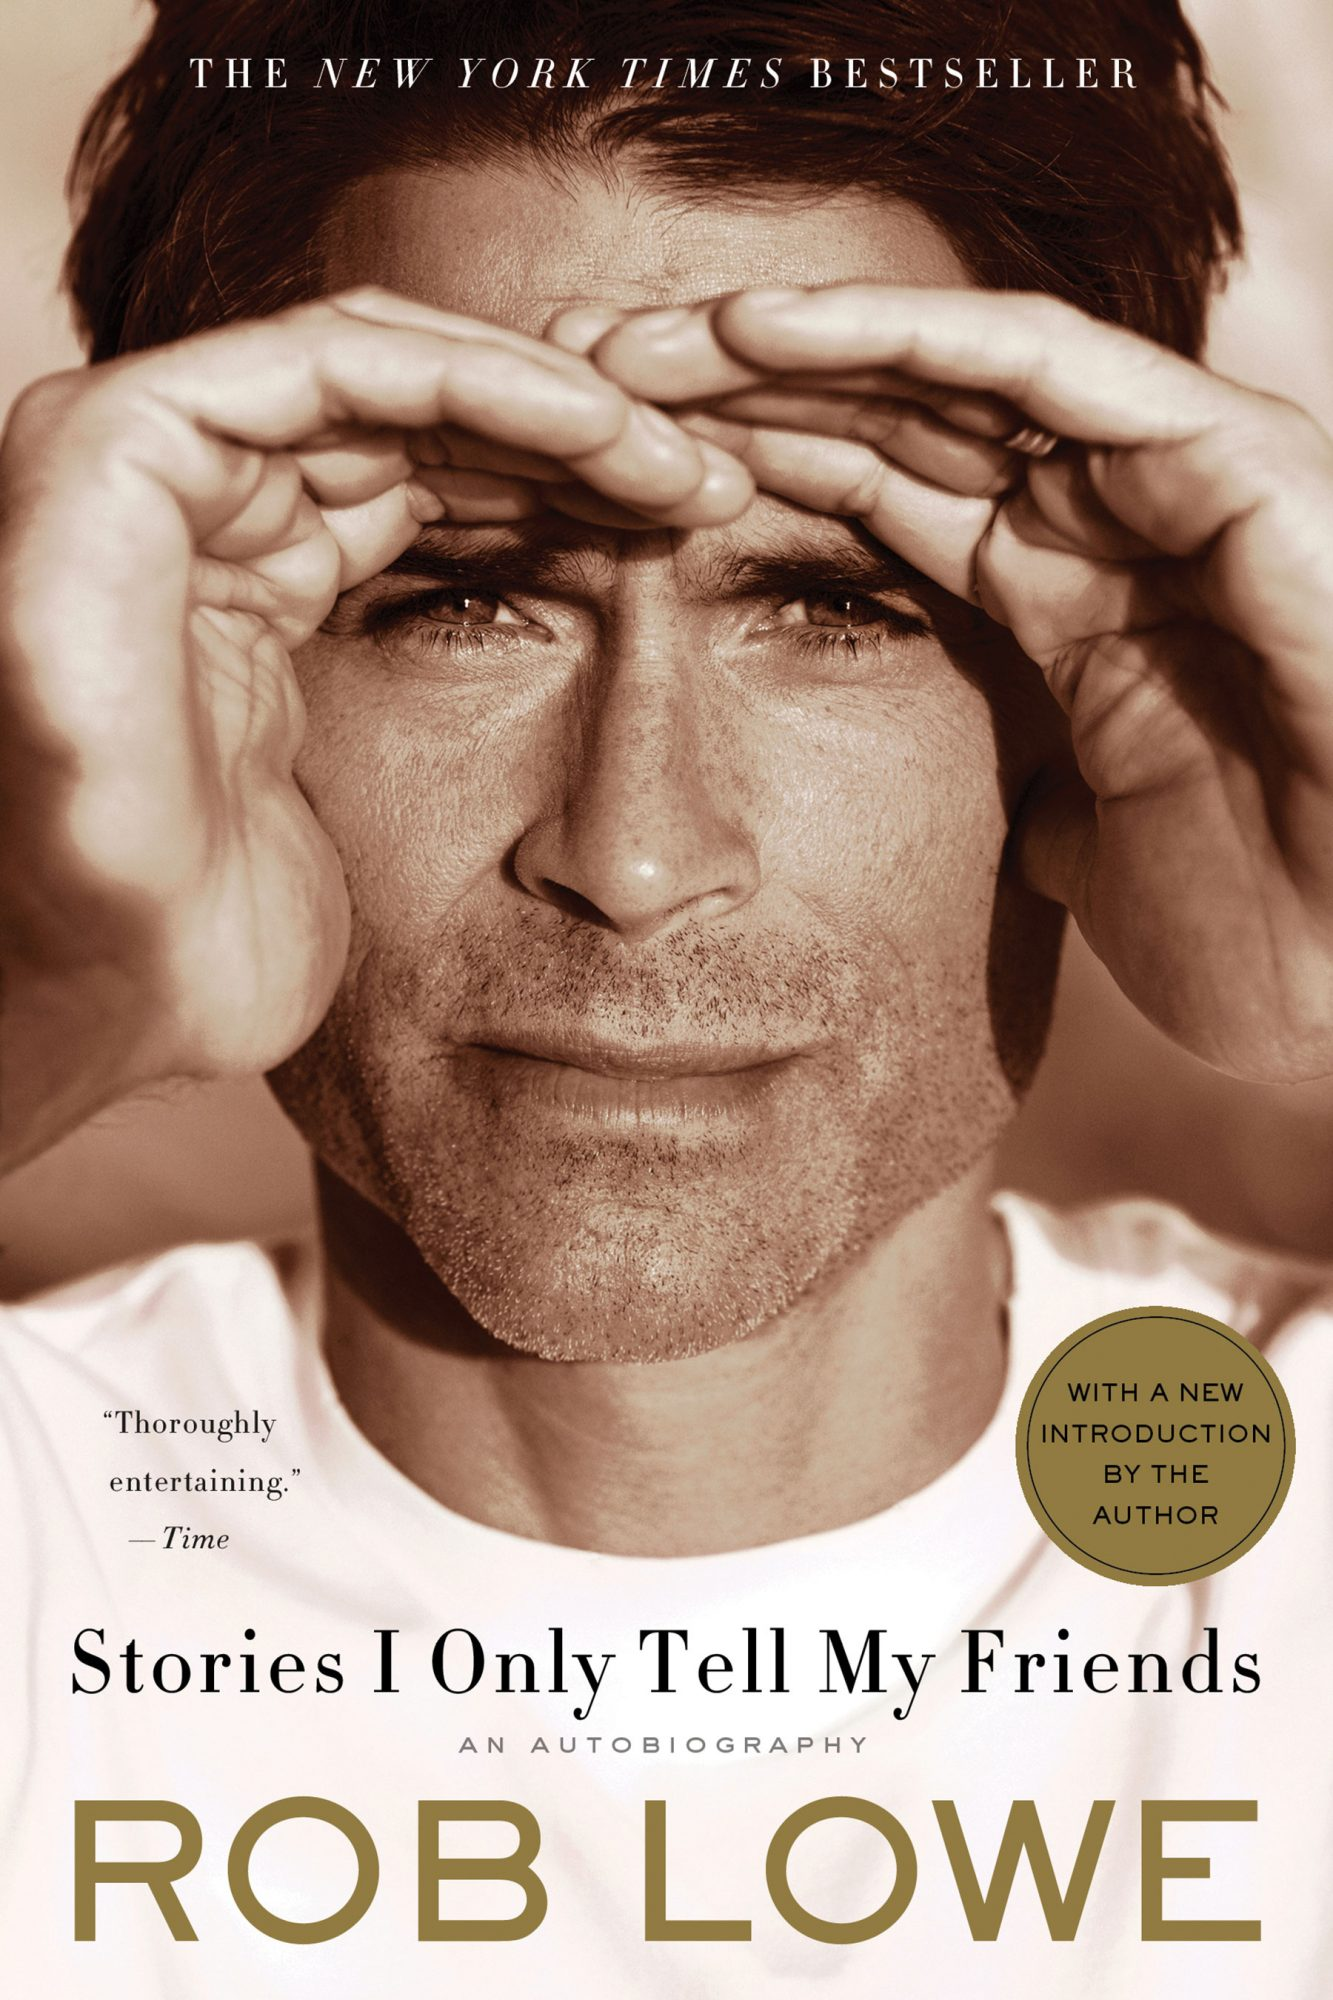 Stories I Only Tell My Friends: An Autobiography (paperback 1/3/12)by Rob Lowe